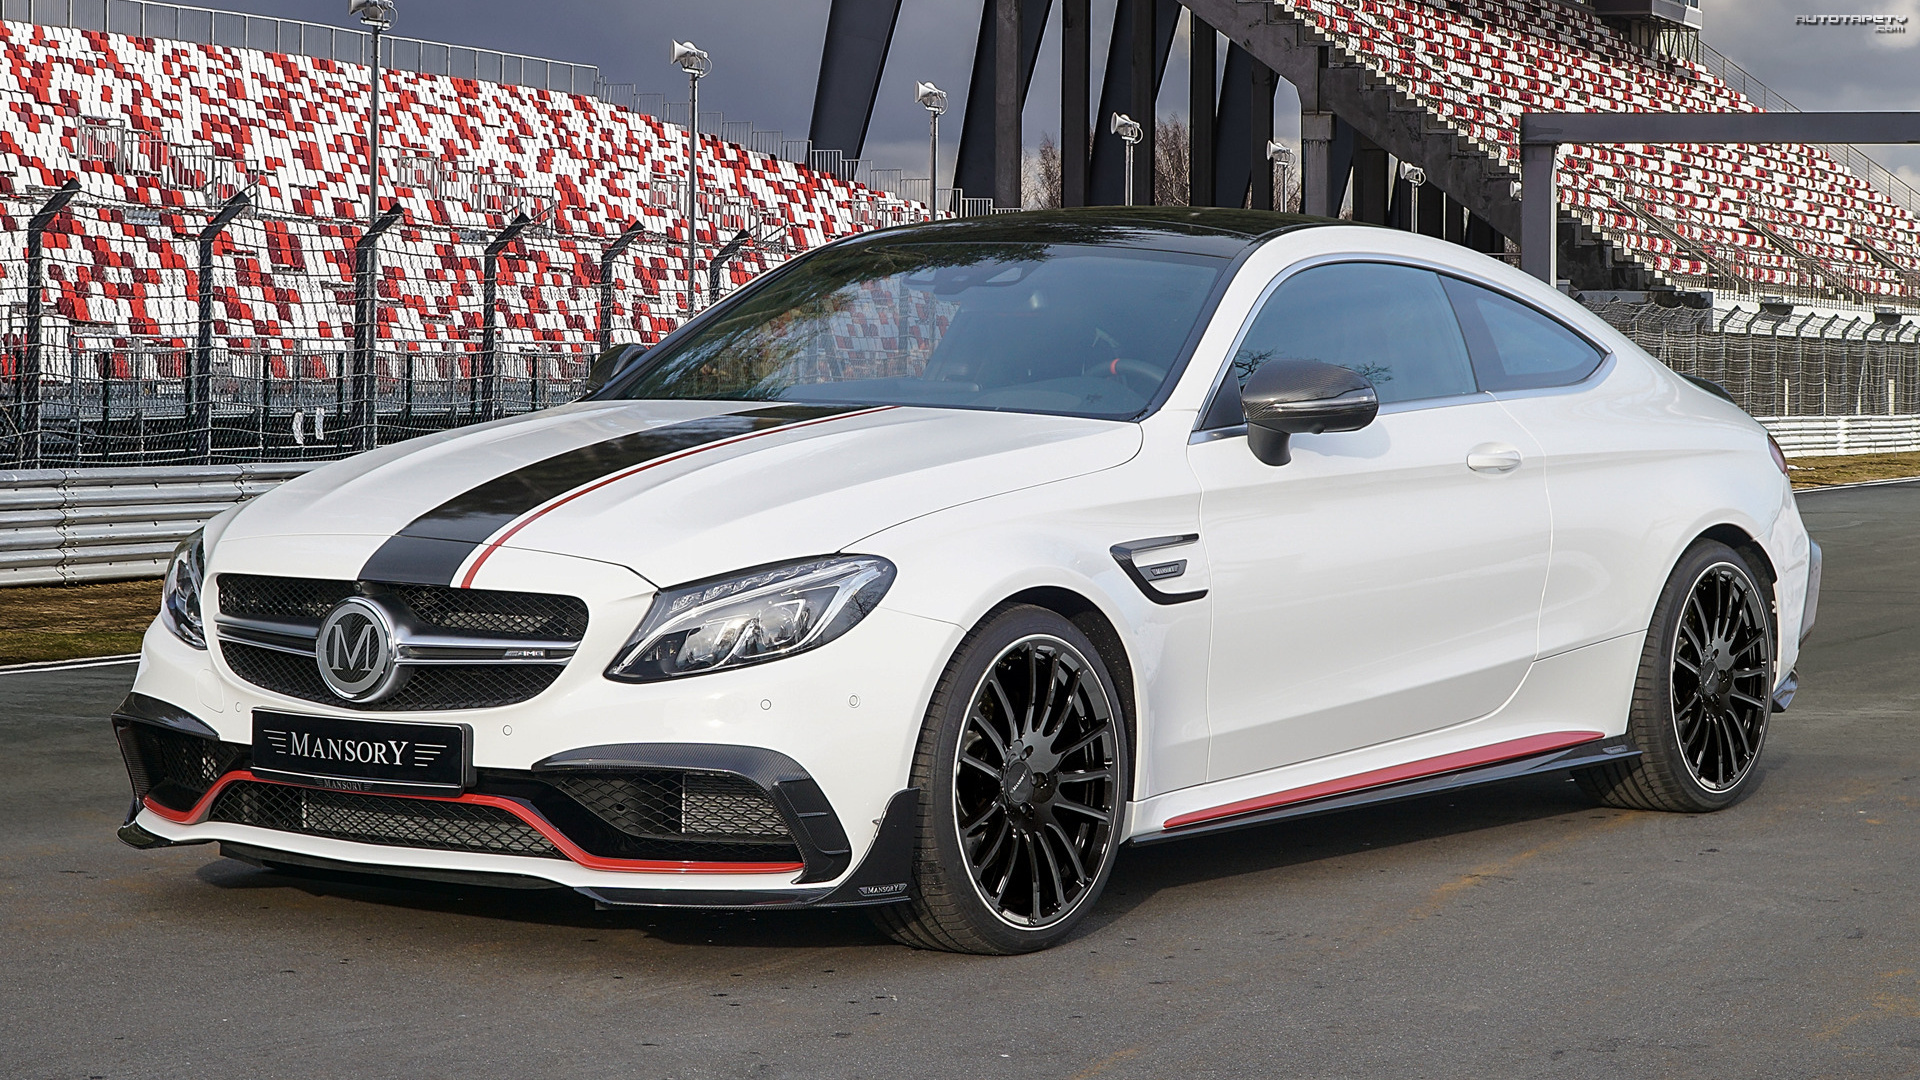 Mercedes-AMG C63 S Coupe, Mansory